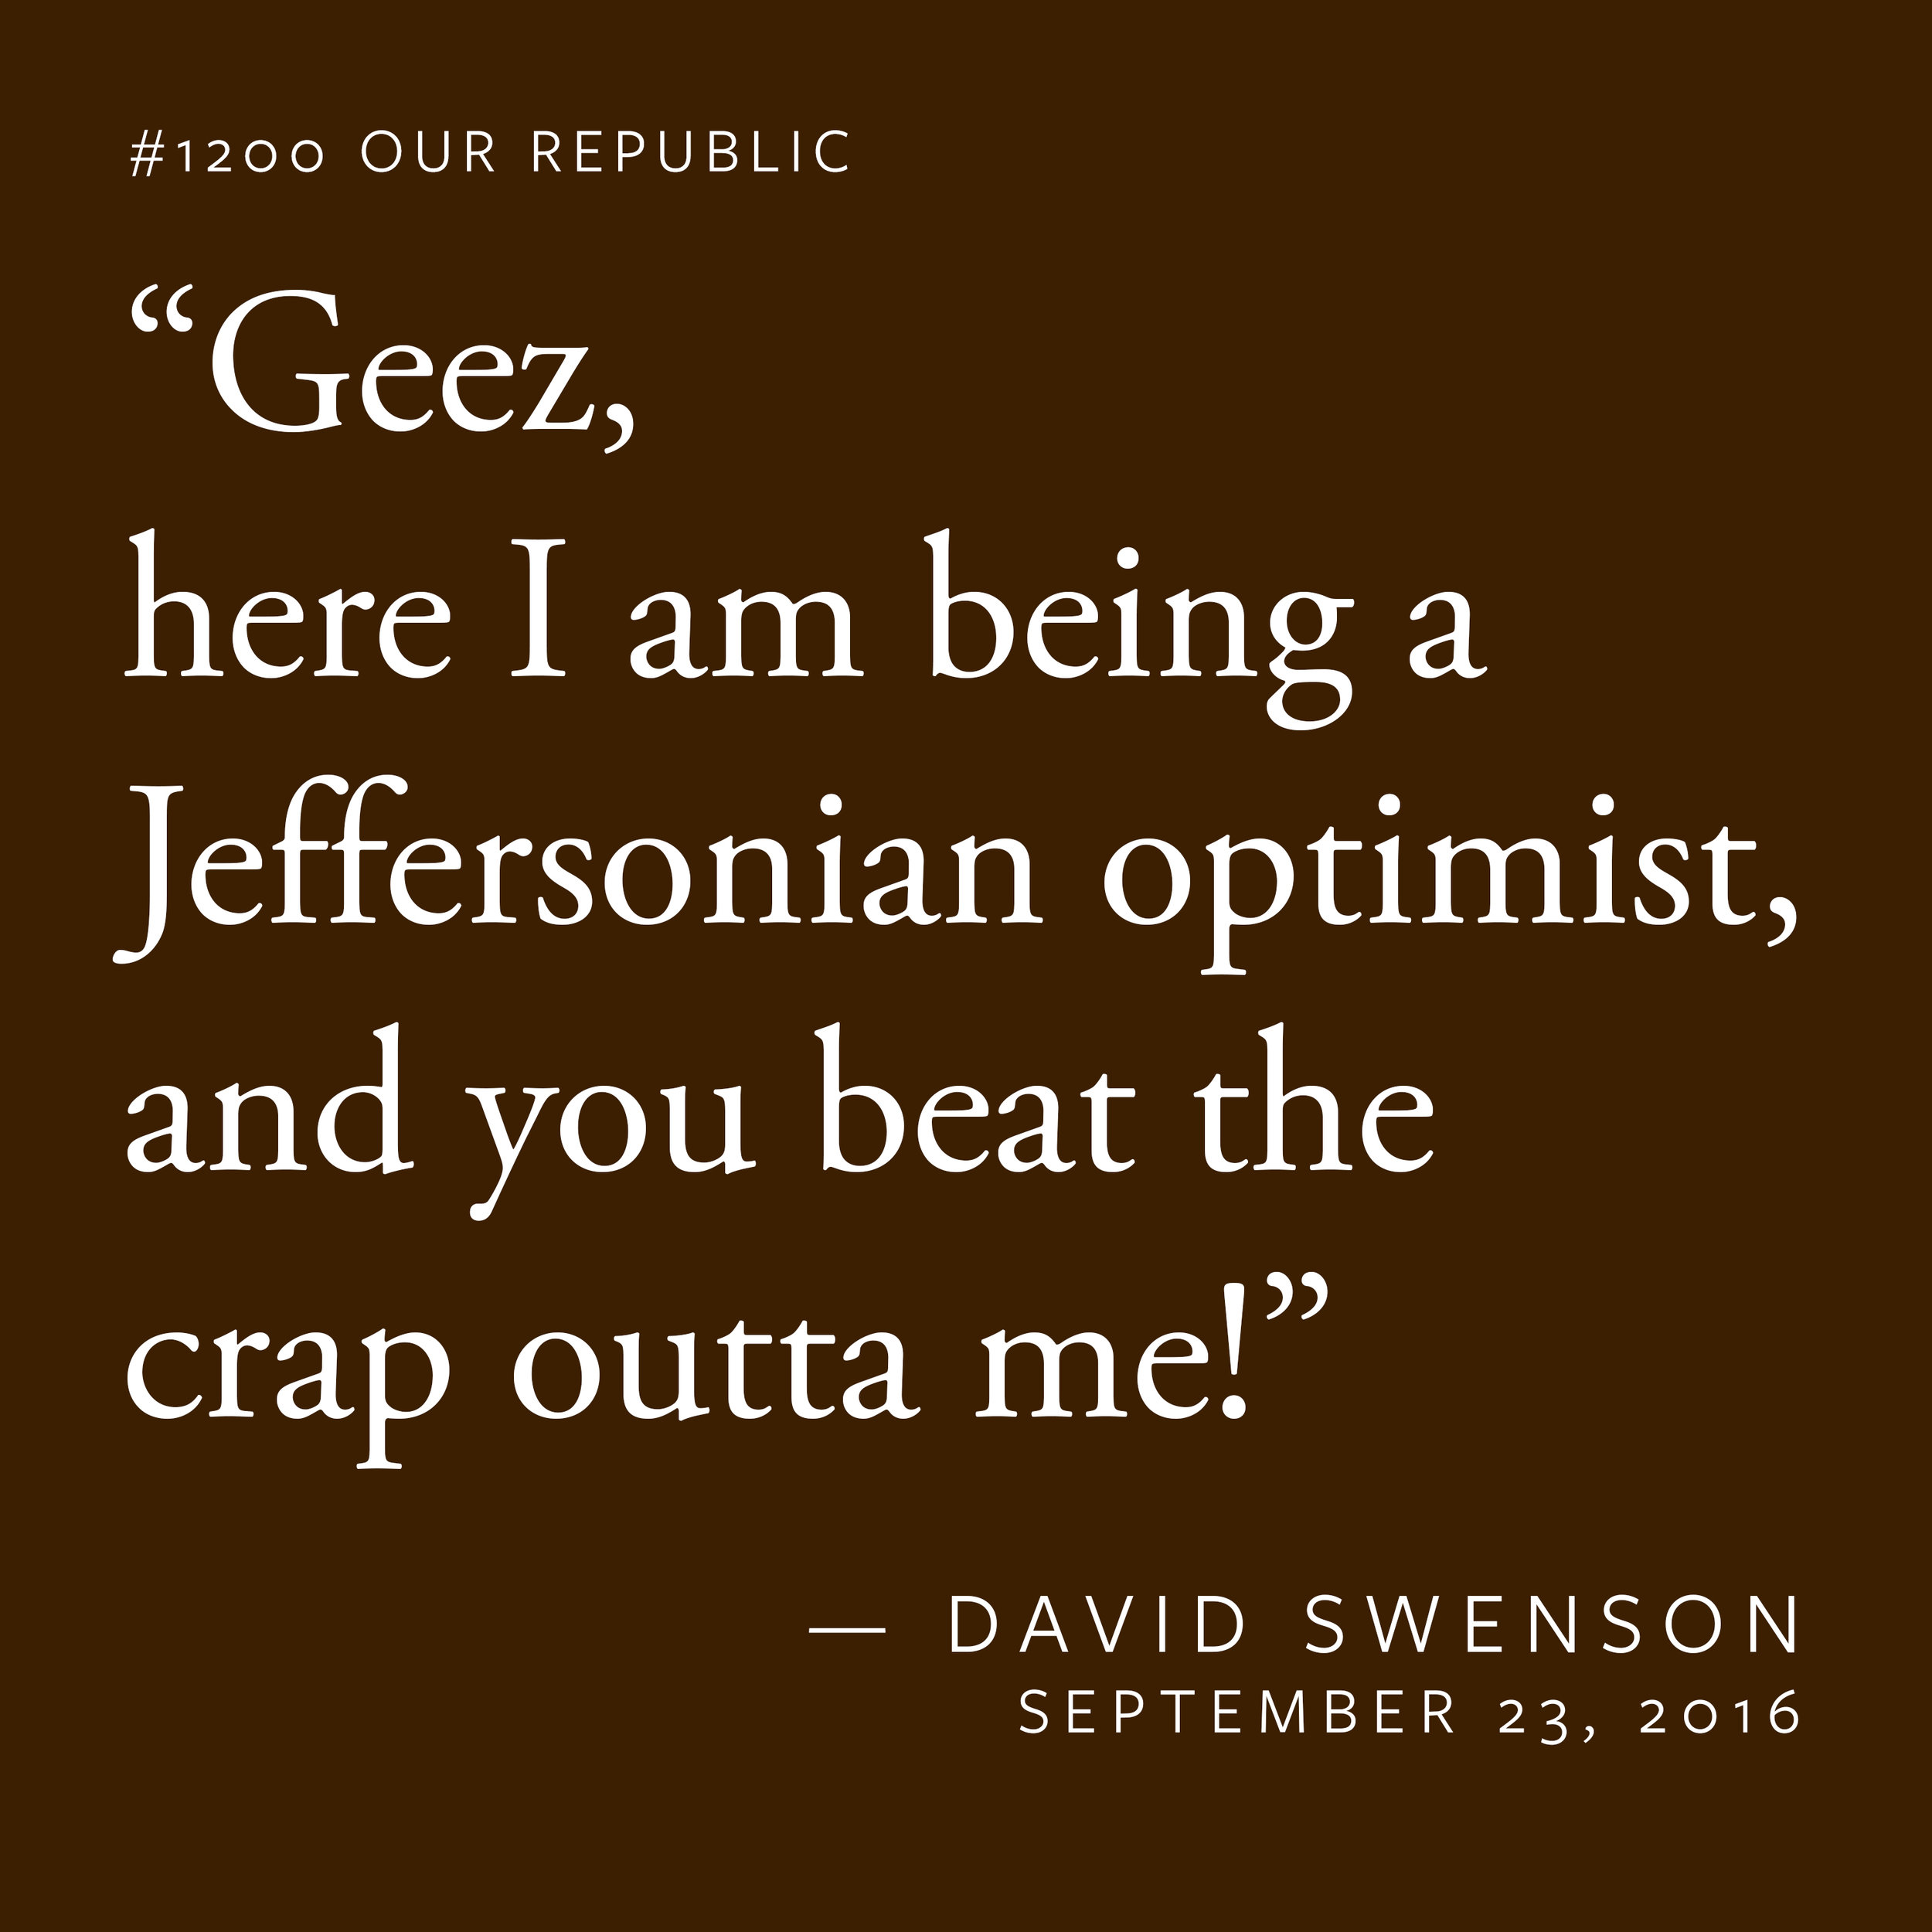 """""""Geez, here I am being a Jeffersonian optimist, and you beat the crap outta me!"""""""